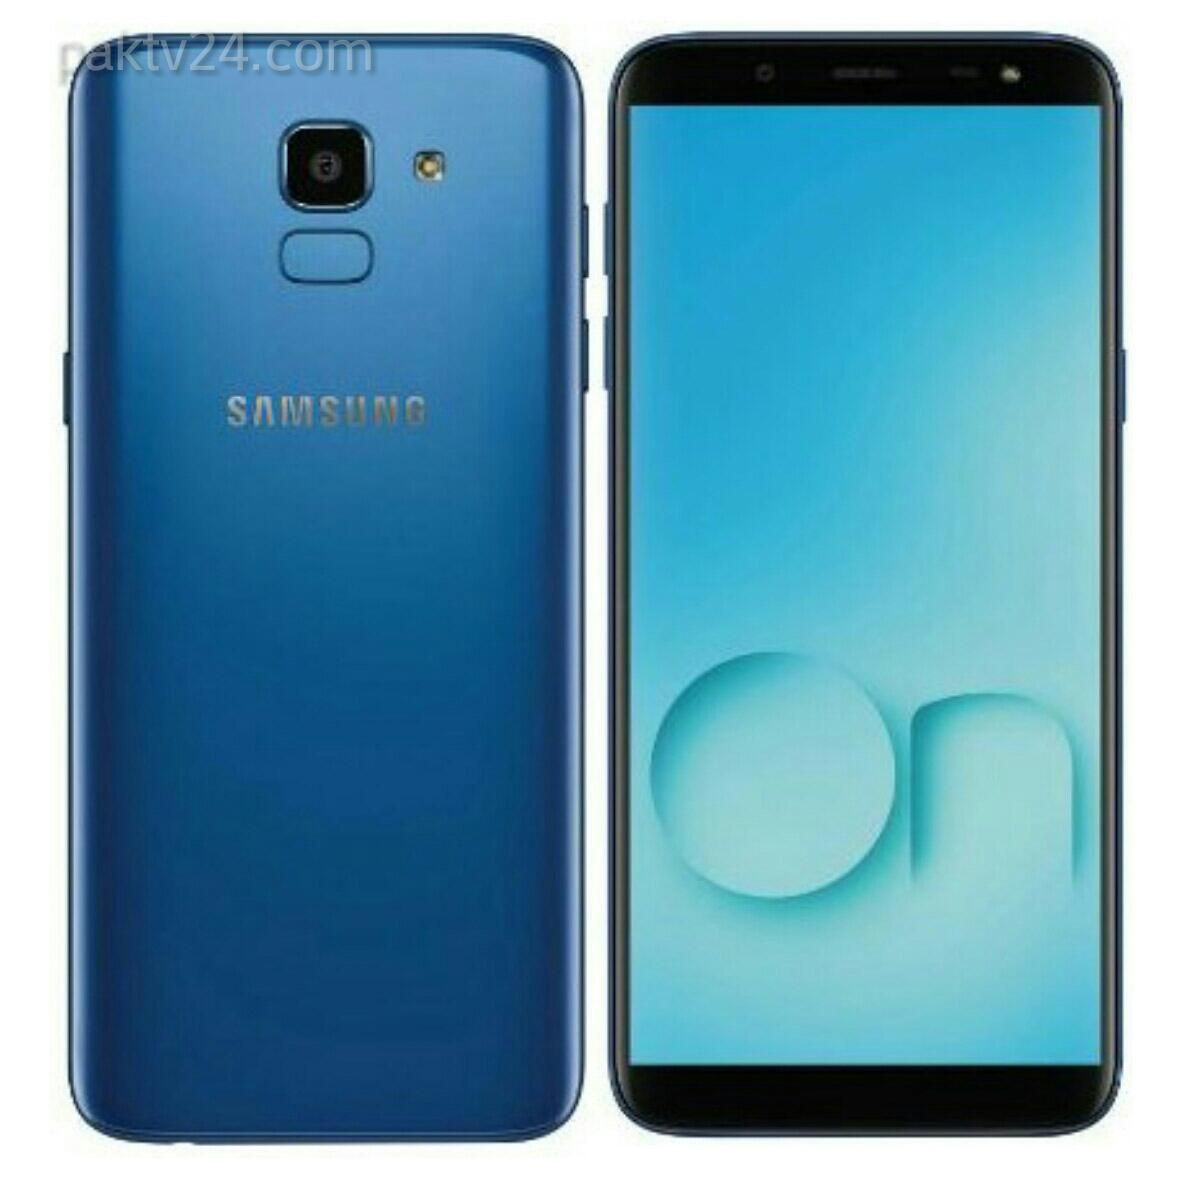 Samsung Galaxy On6 Price And Specifications Samsung Galaxy Samsung Samsung Mobile